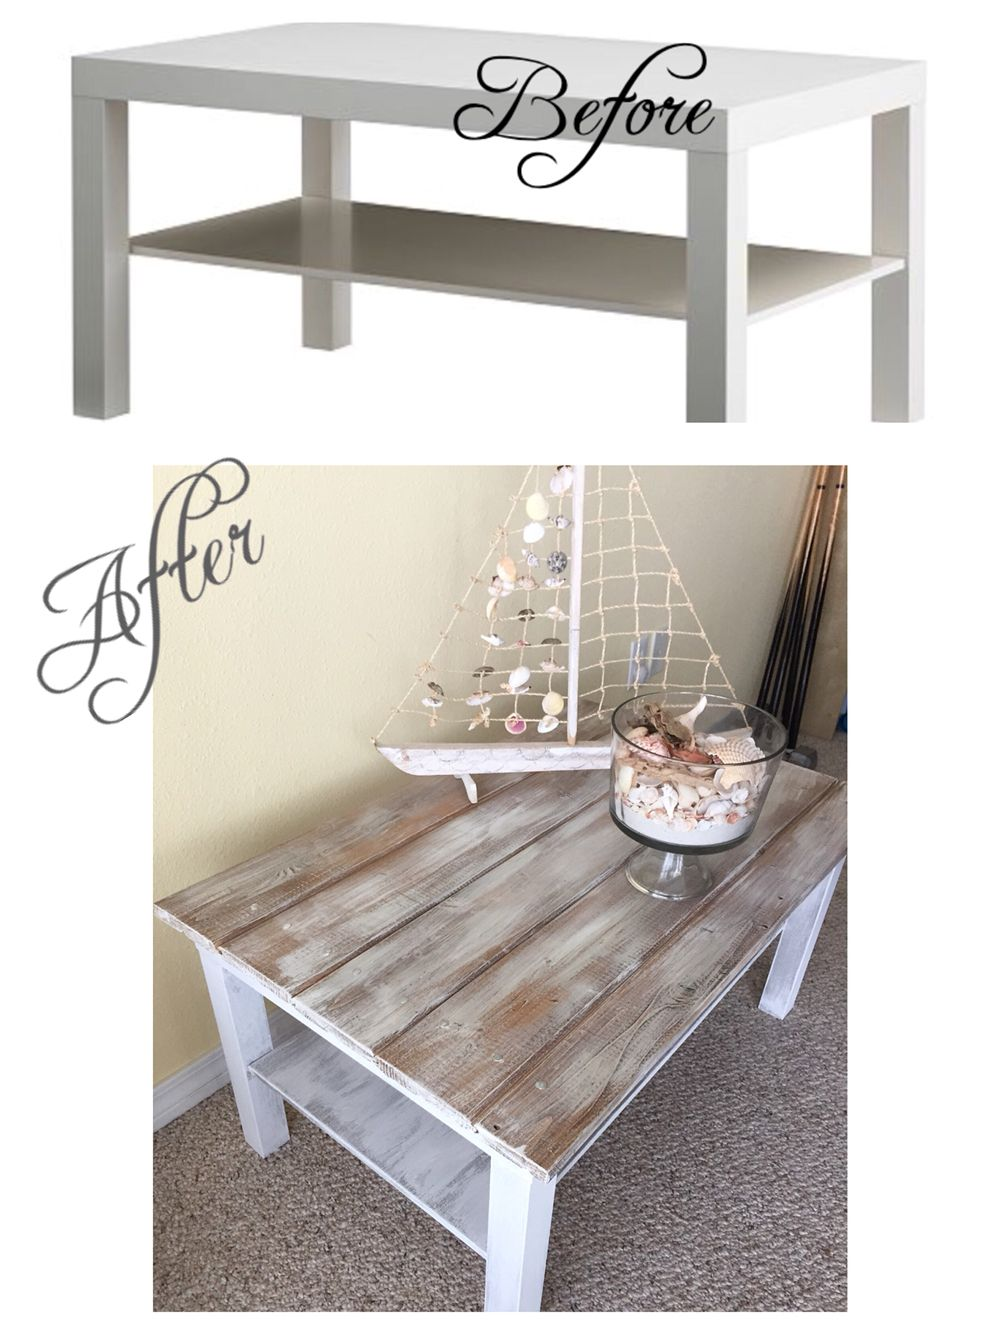 Ikea Coffee Table Hack Chalk Paint French Linen Dry Brush Pure White Dry Brush Wood Planks Pure Ikea Coffee Table Coffee Table Hacks Chalk Paint Coffee Table [ 1334 x 1000 Pixel ]